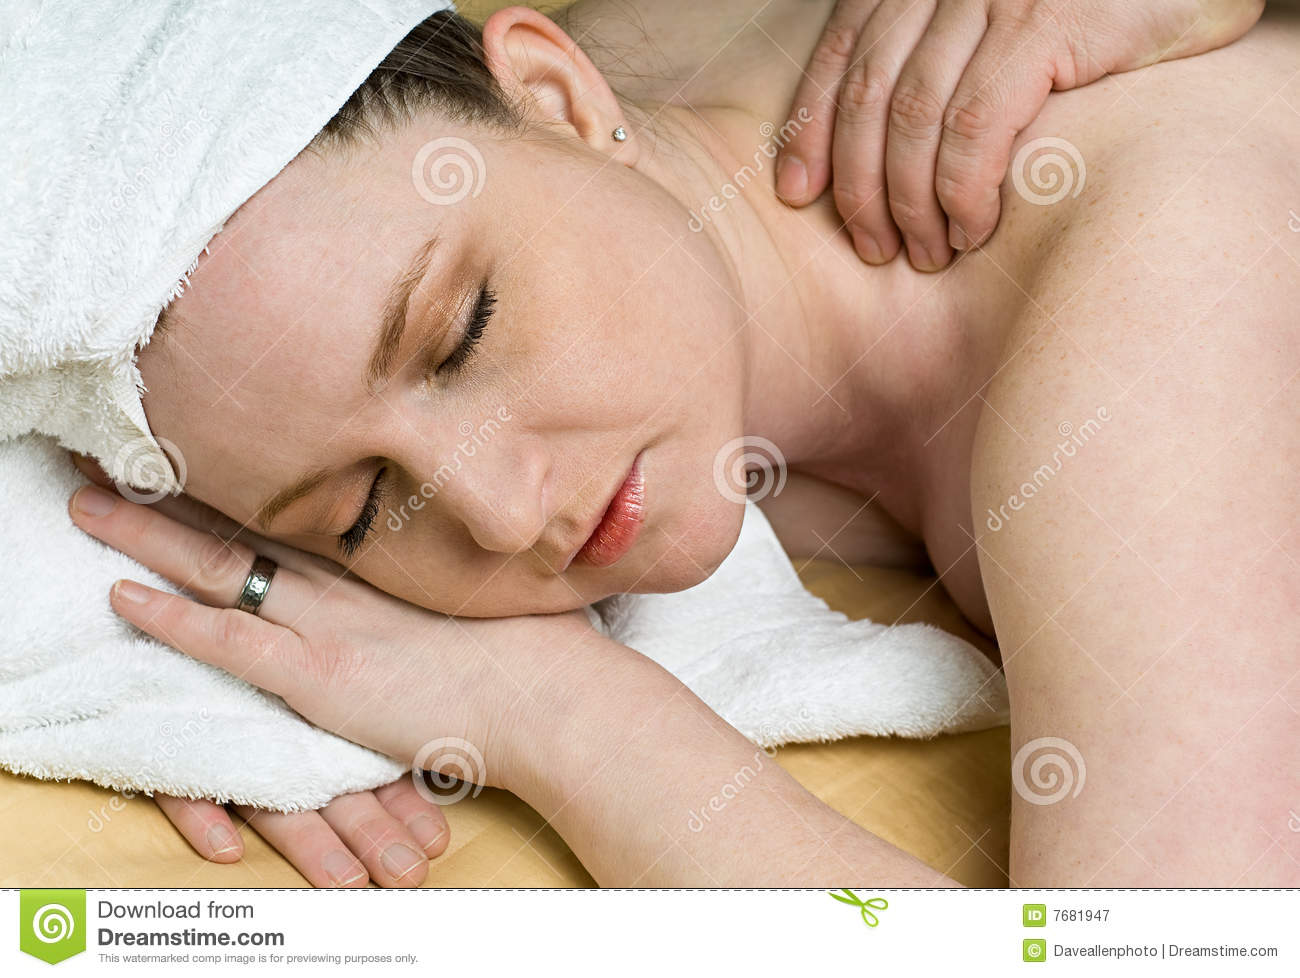 Royalty Free Stock Photography Beautiful Salon Woman Gets Massage Therapy Spa Image7681947 on office floor plans for massage therapy